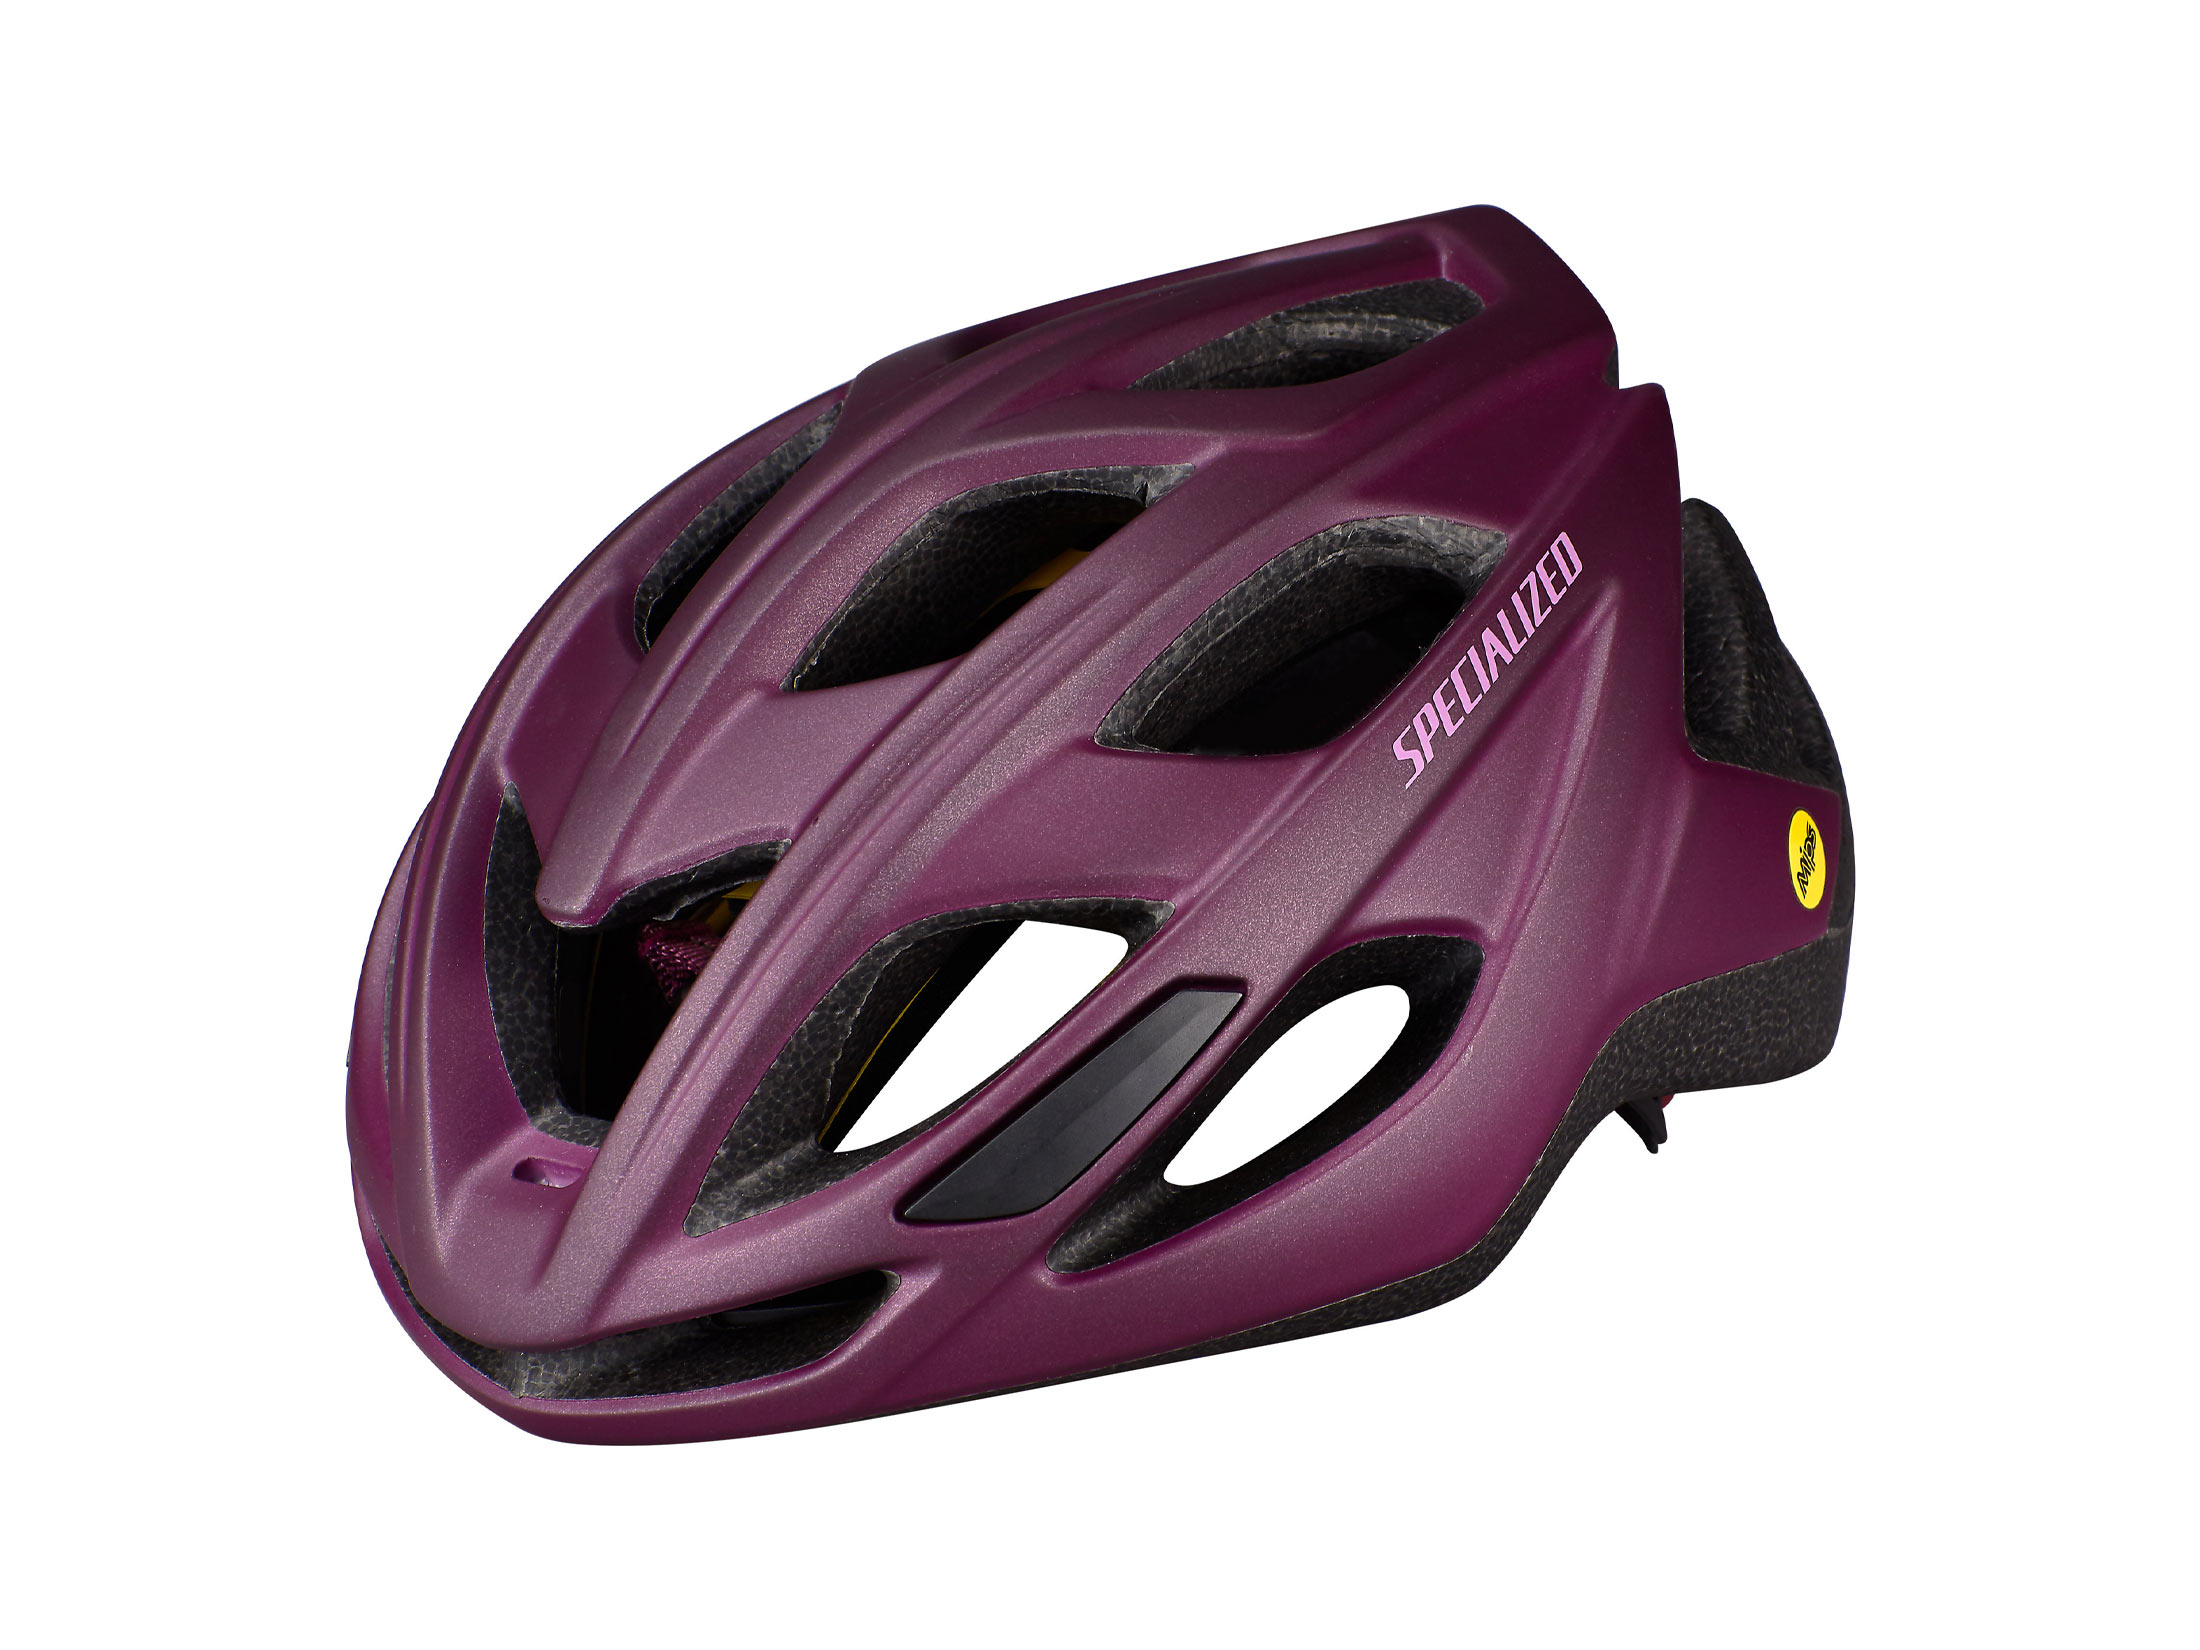 Specialized Chamonix Helmet with MIPS - Cast Berry